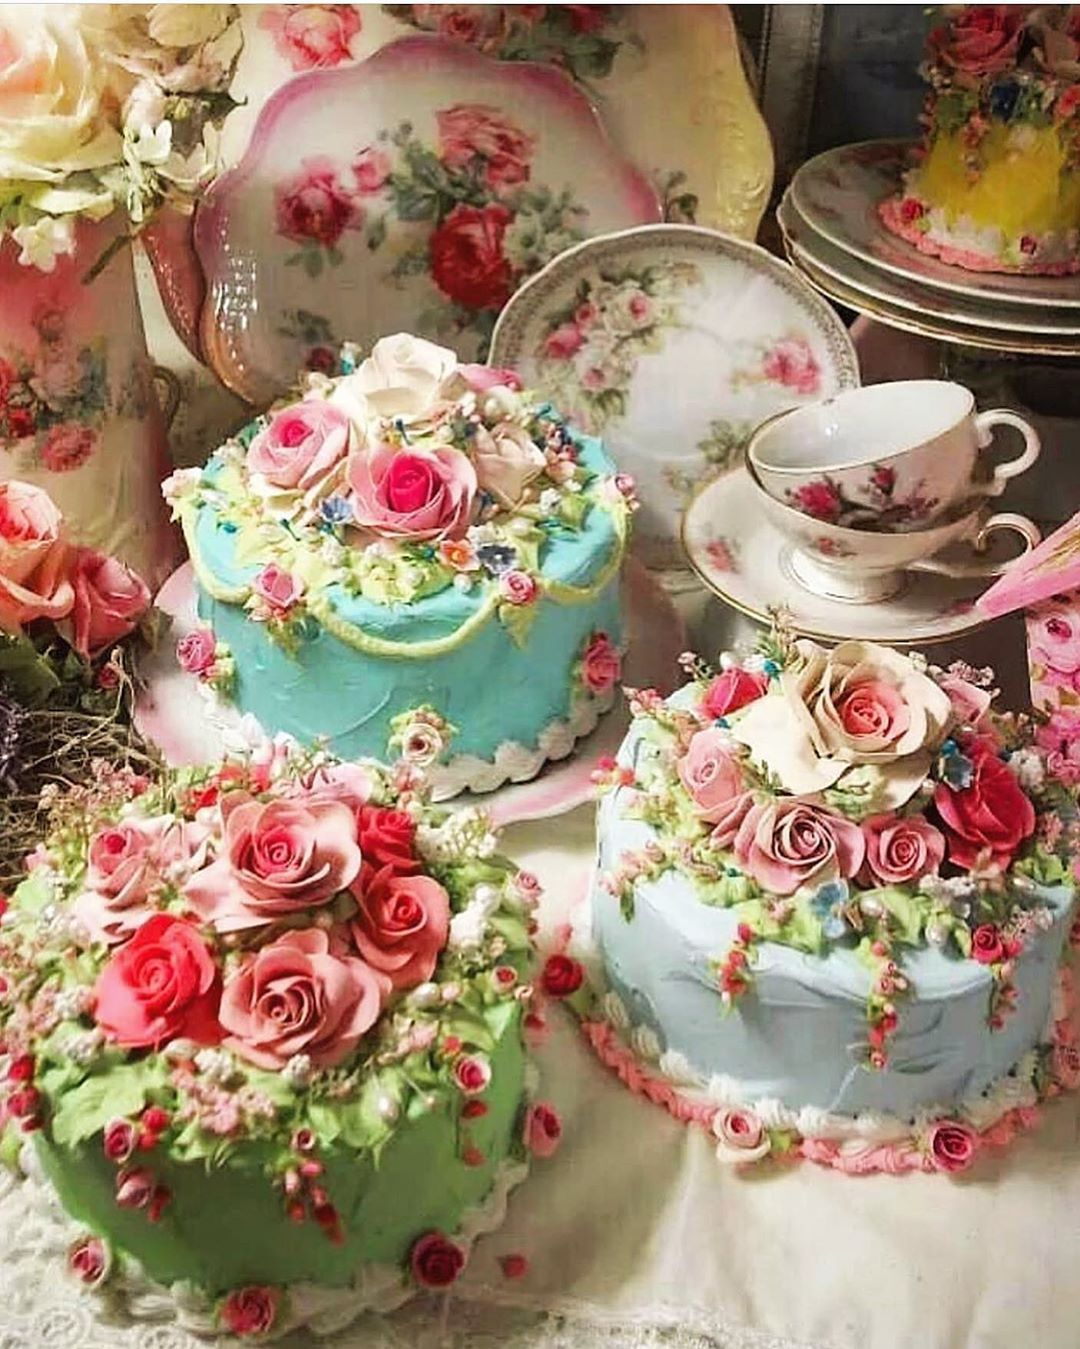 Beautifully decorated cakes covered in rose details! Via @yasmintearoom 🌳🦋🍂🐝 •  🌿🦋